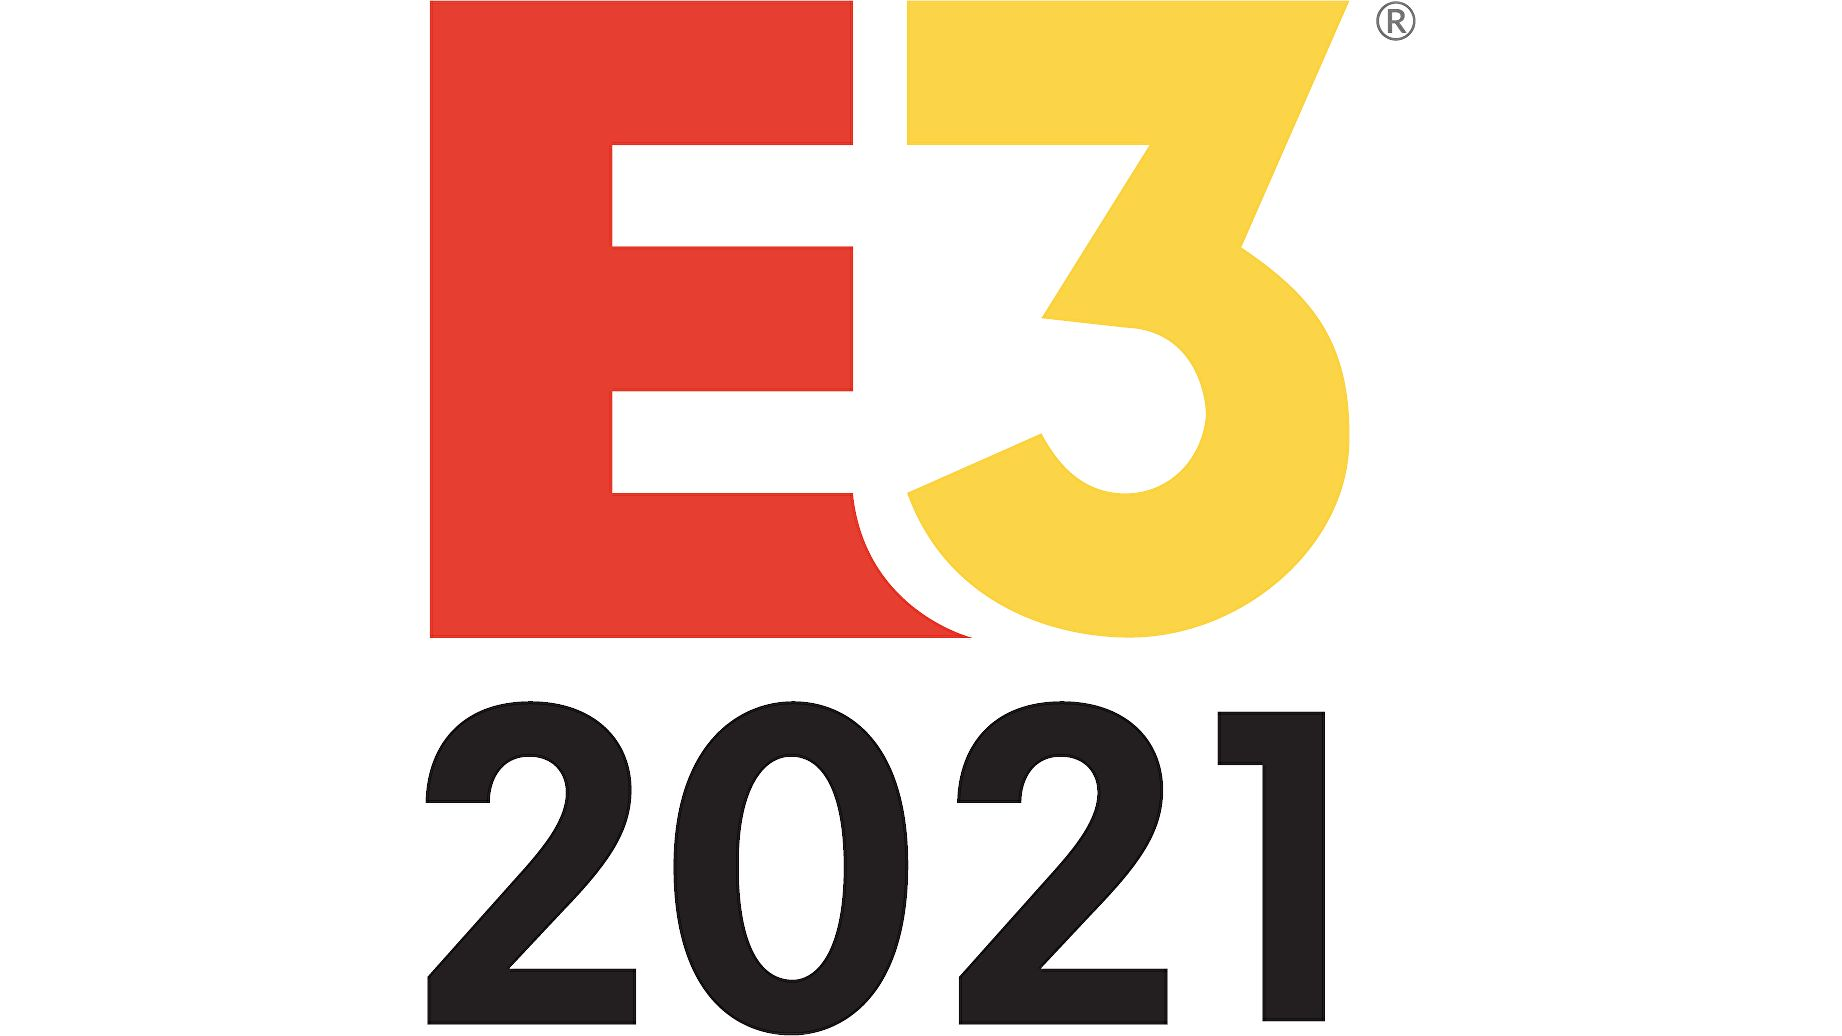 E3 returns for 2021 with an online show June 12-15